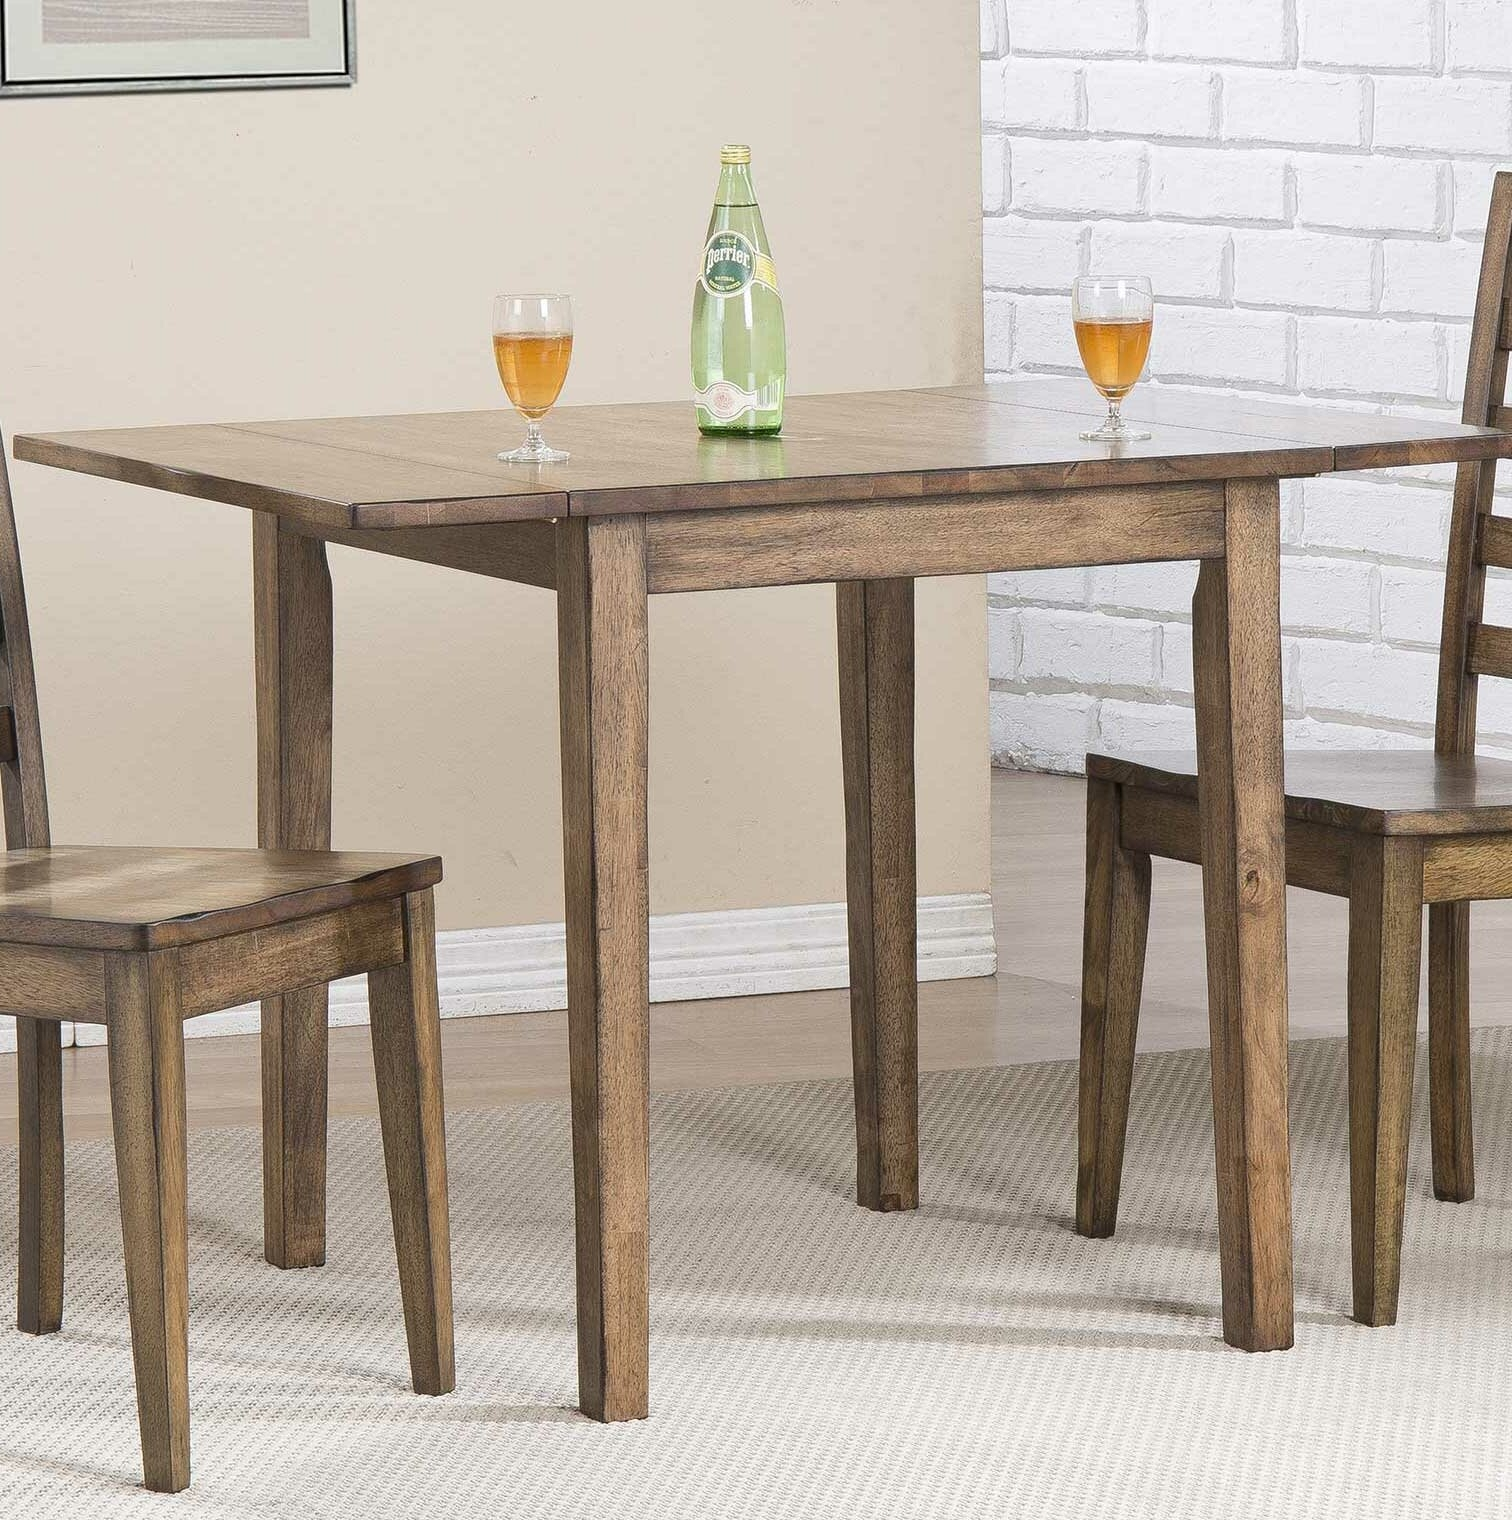 Narrow Rectangular Dining Table You Ll Love In 2021 Visualhunt